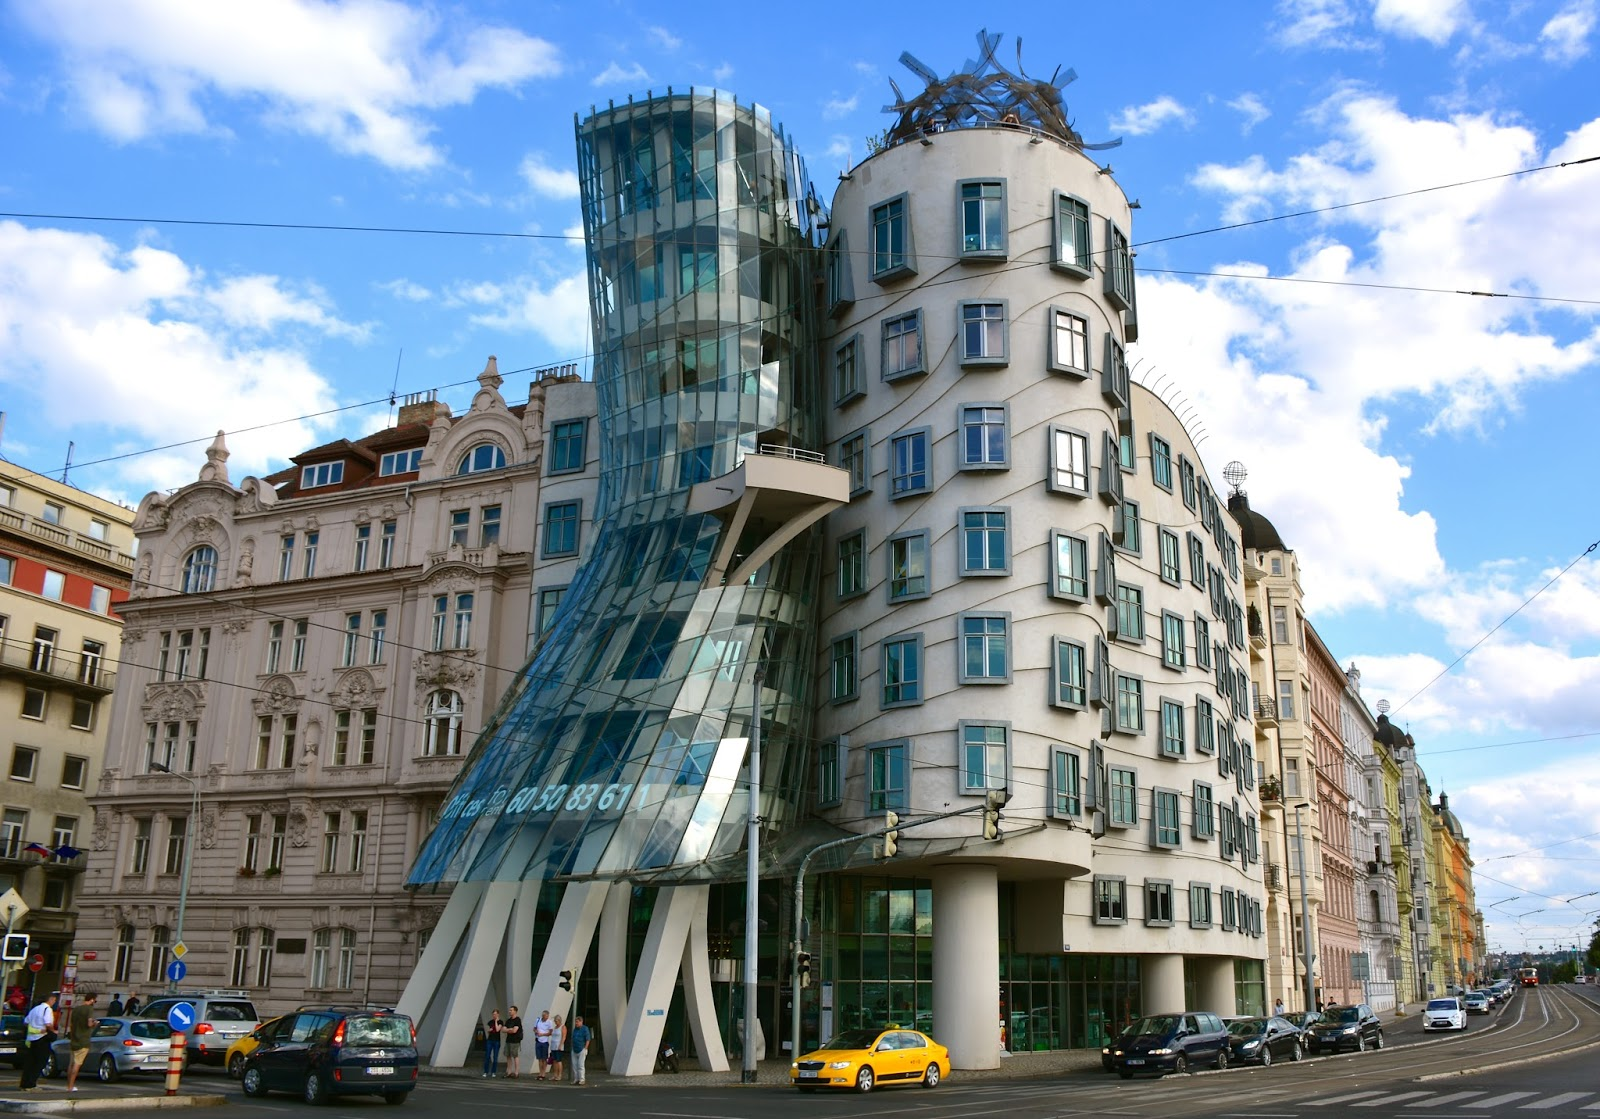 AD100: Top 10 Best Interior Design by Gehry frank gehry AD100: Top 10  Best Interior Design by Frank Gehry 4